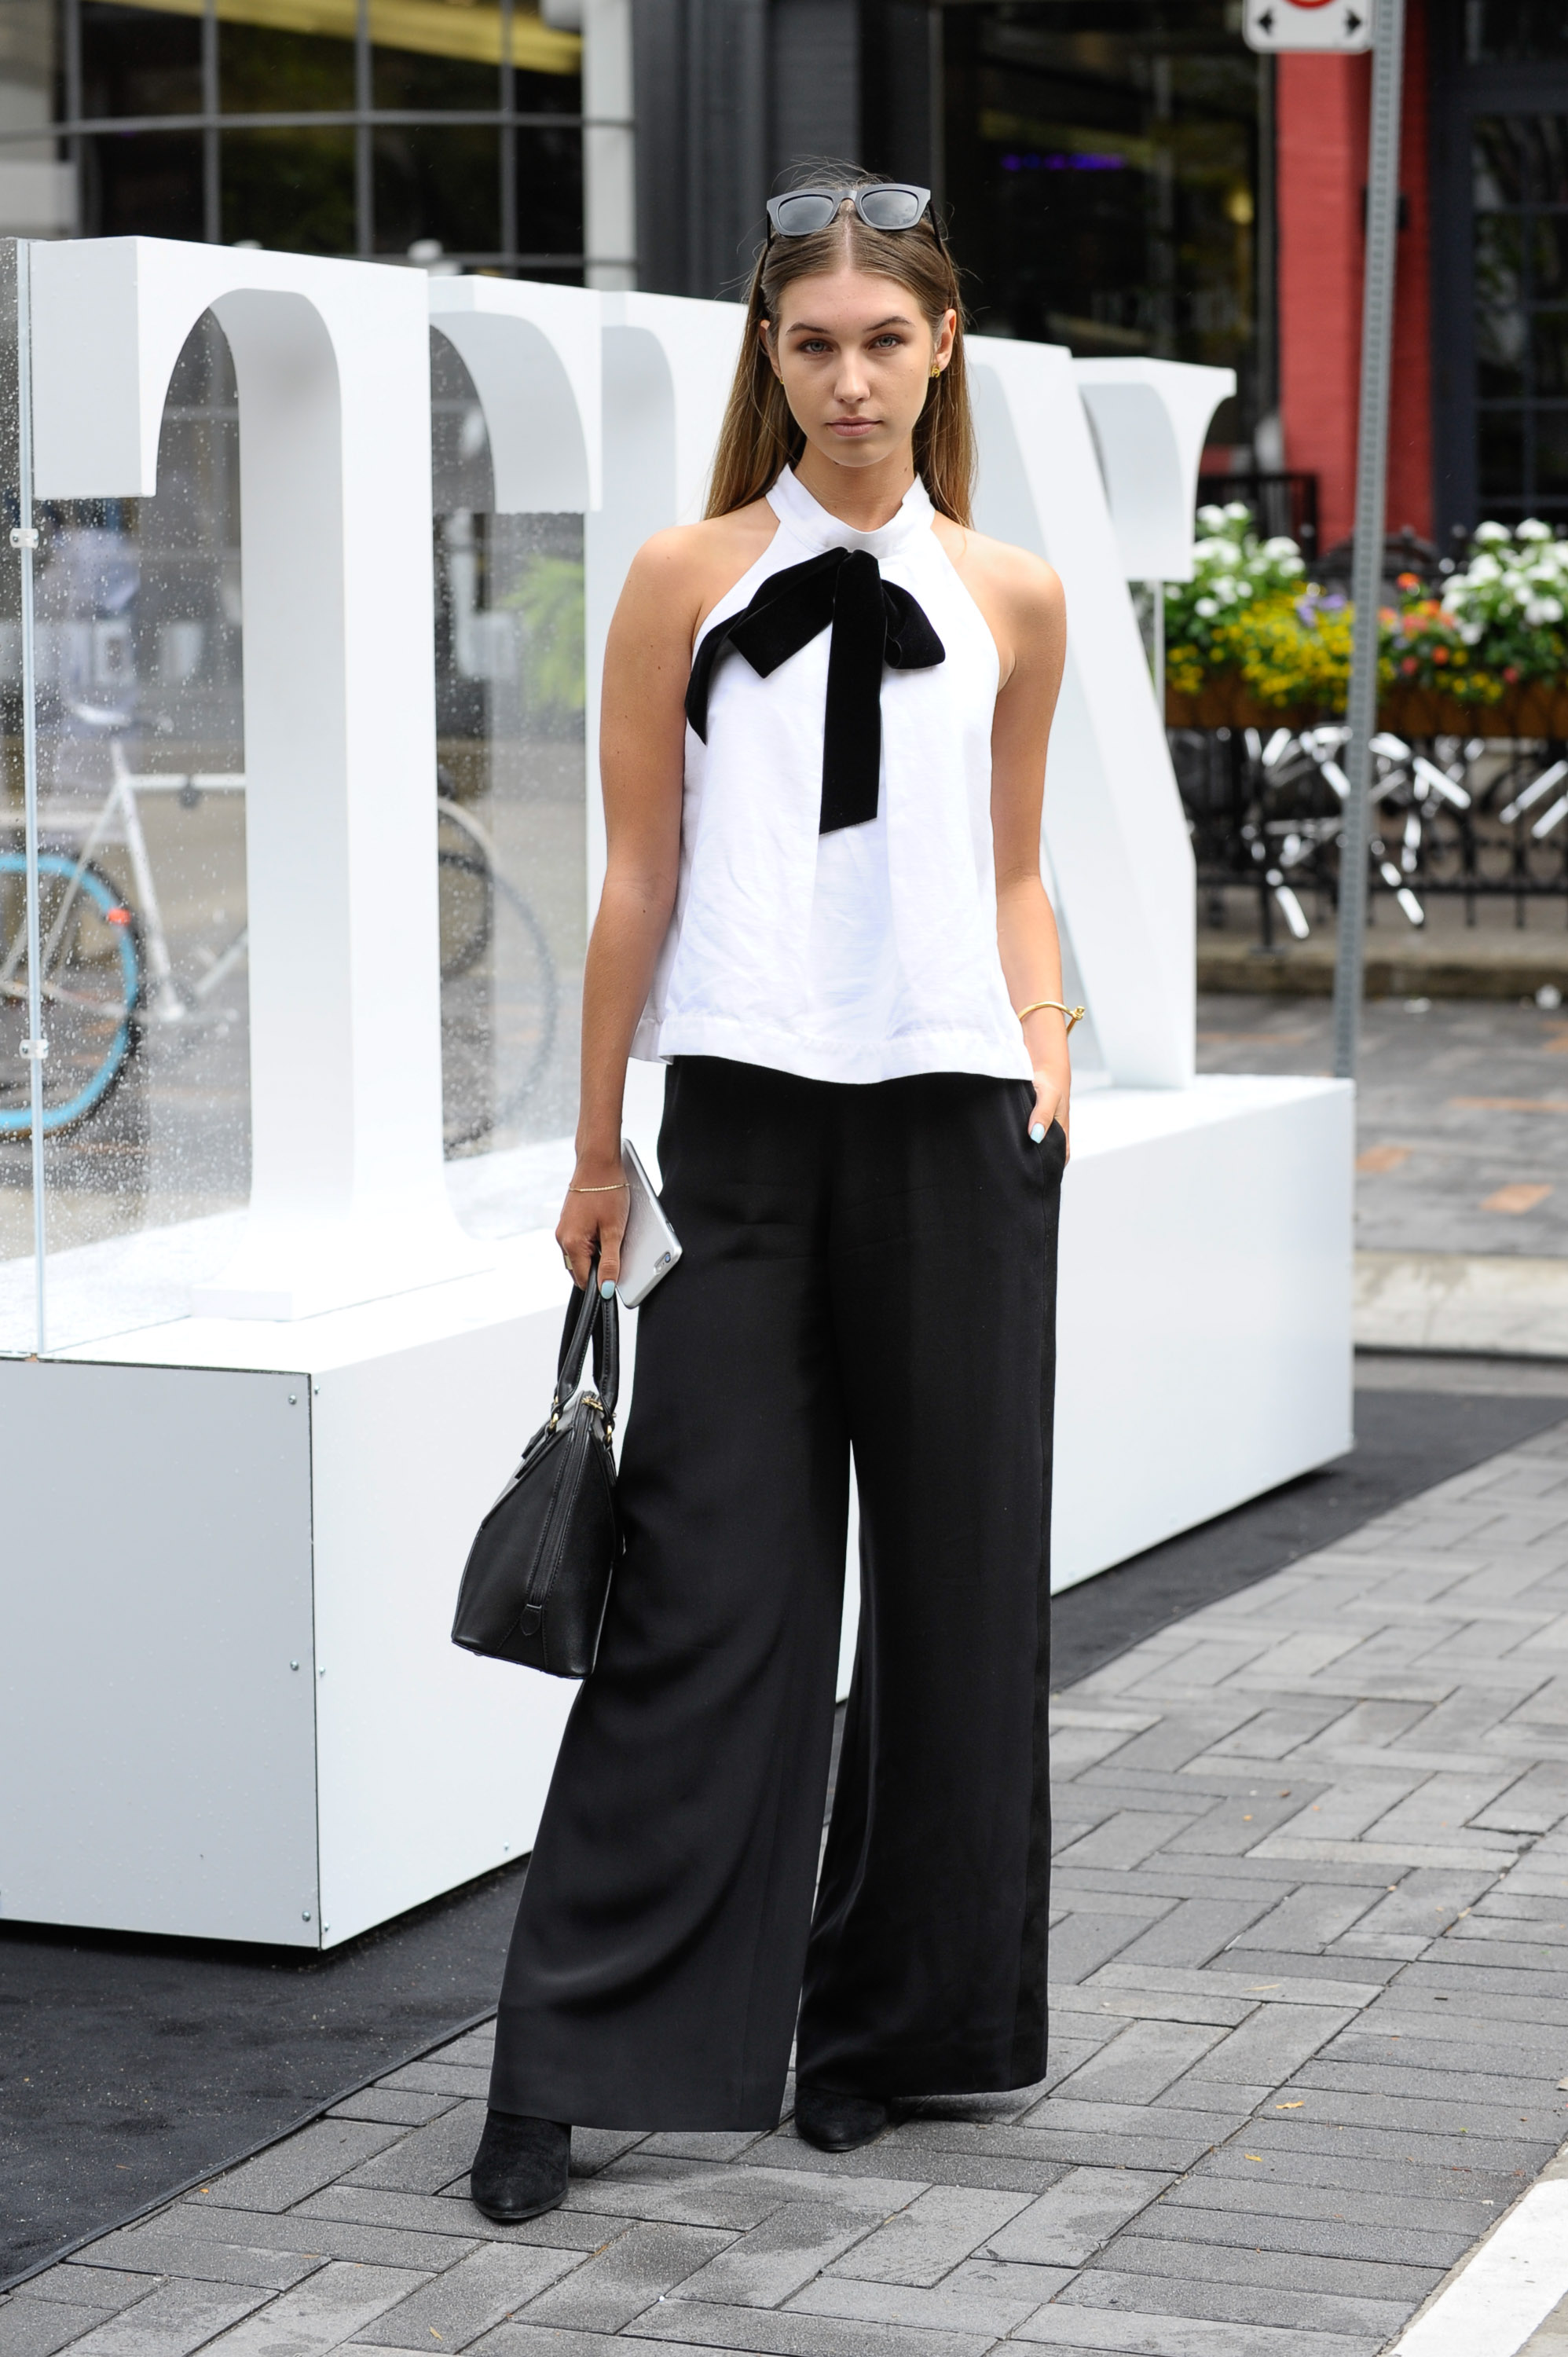 There's nothing basic about this black and white ensemble. (Photography by George Pimentel)